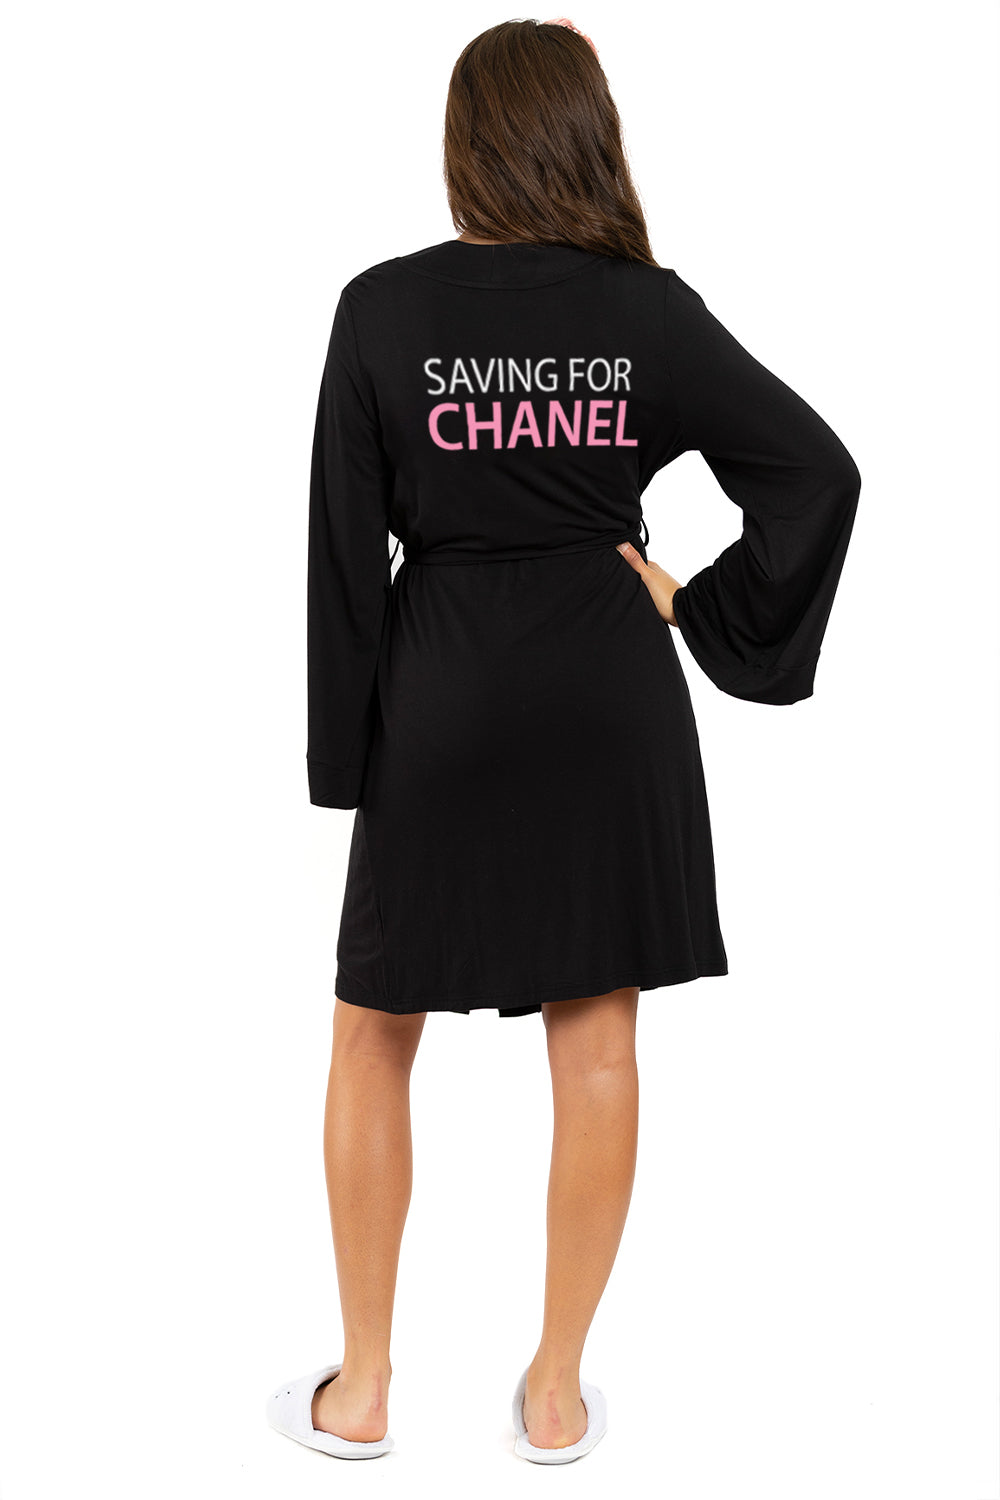 LIGHTWEIGHT ROBE - Saving Of Chanel